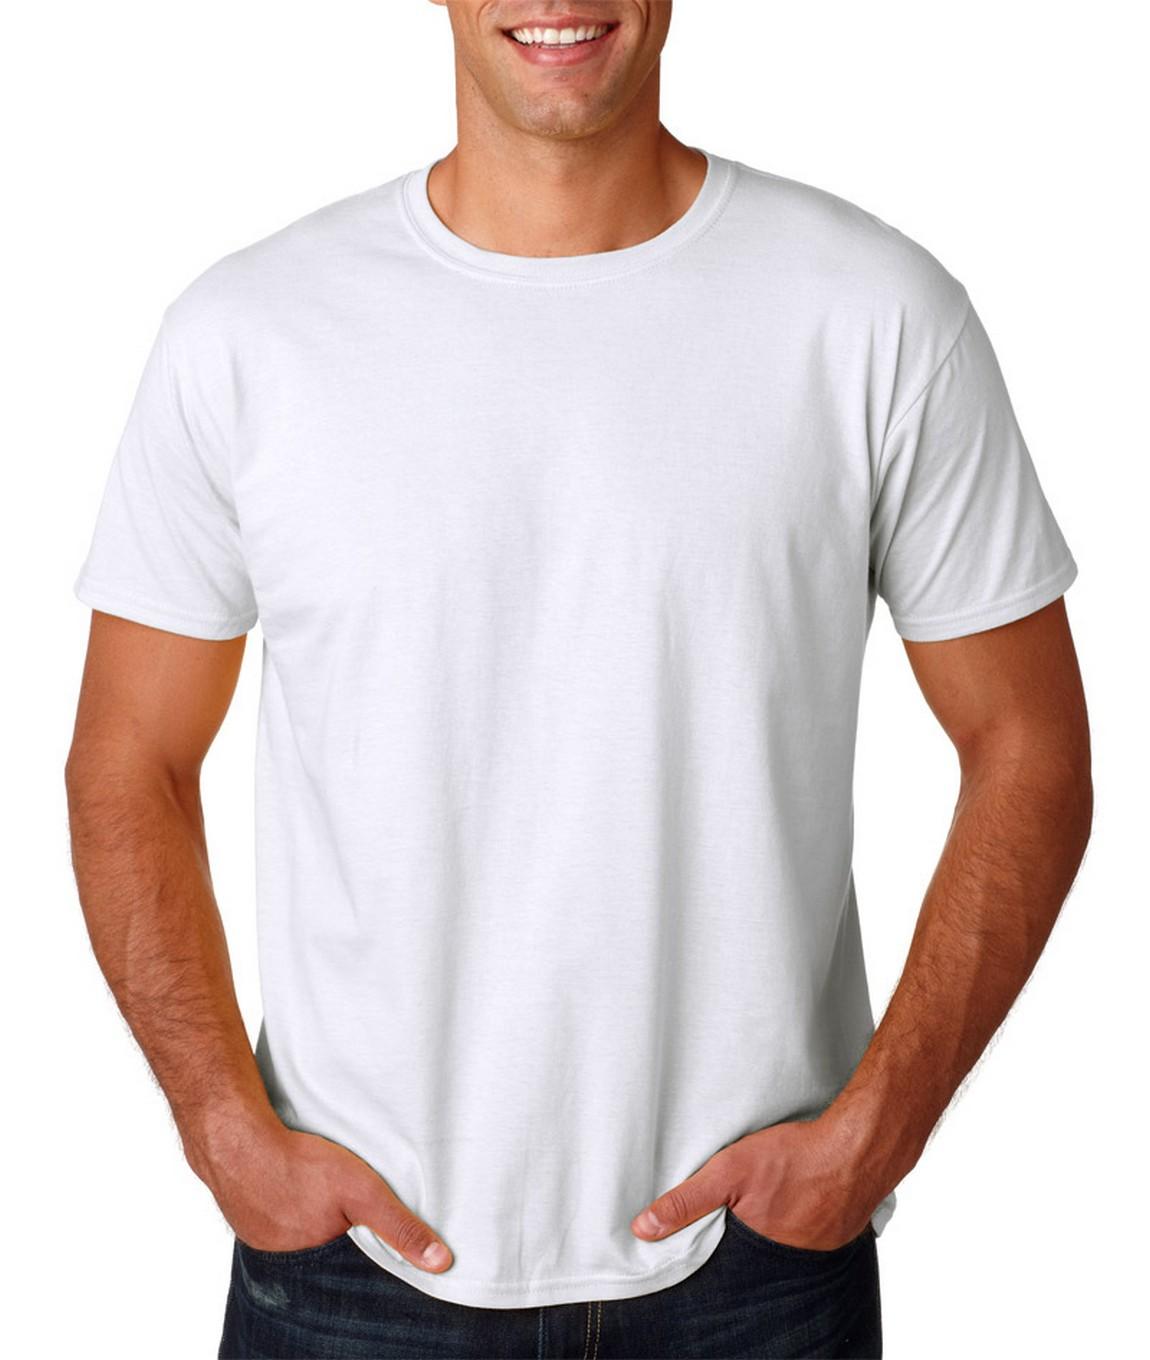 T shirt white png - Blank T Shirt Png Image 30263